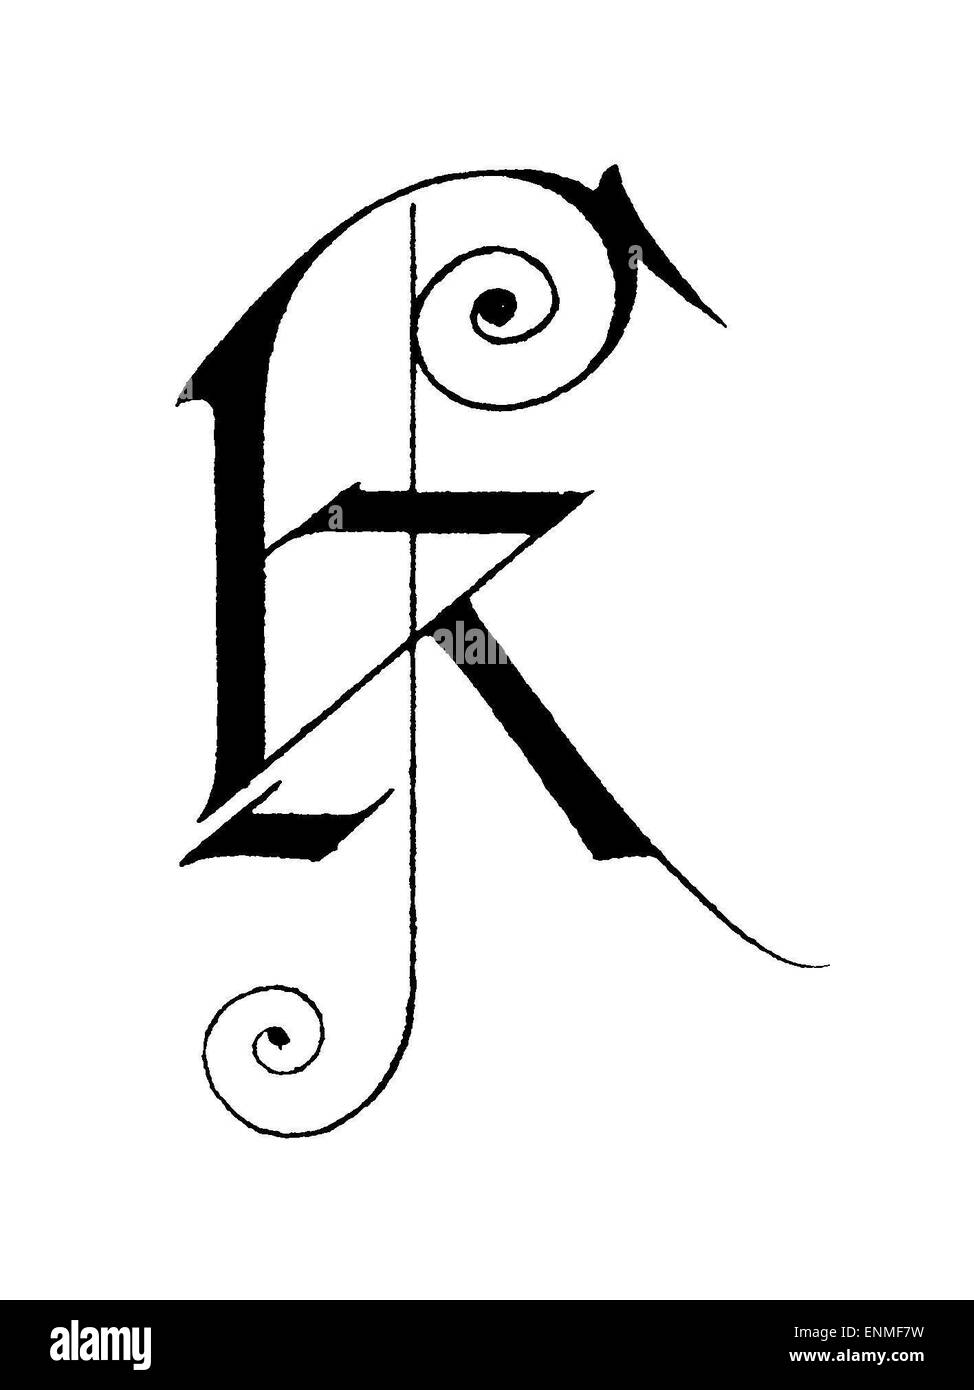 Letter K Black And White Stock Photos Images Alamy